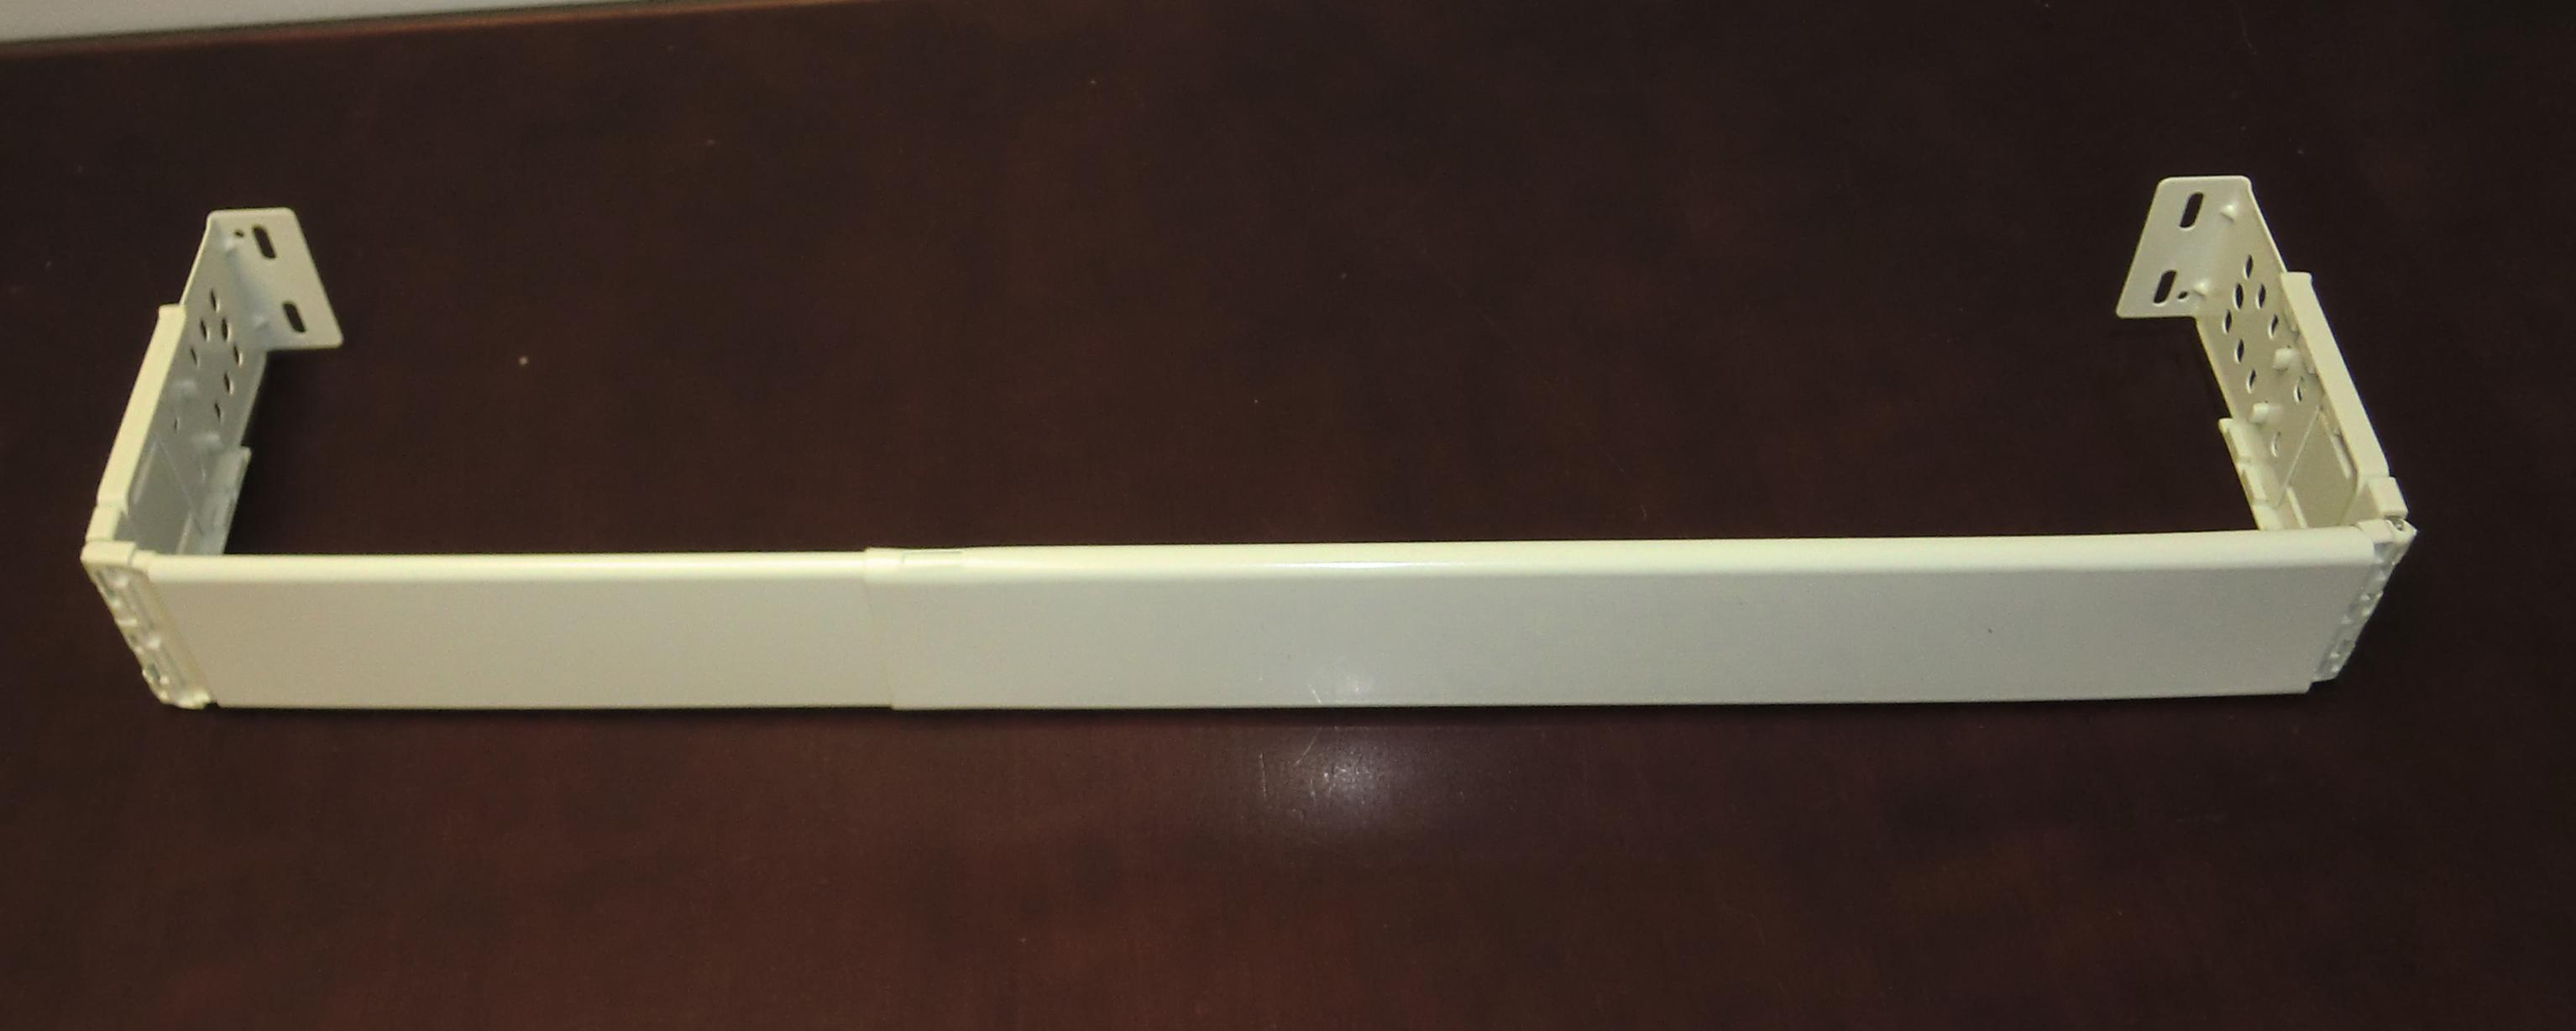 2 1 2 inch dauphine curtain rod 48 to 84 inches